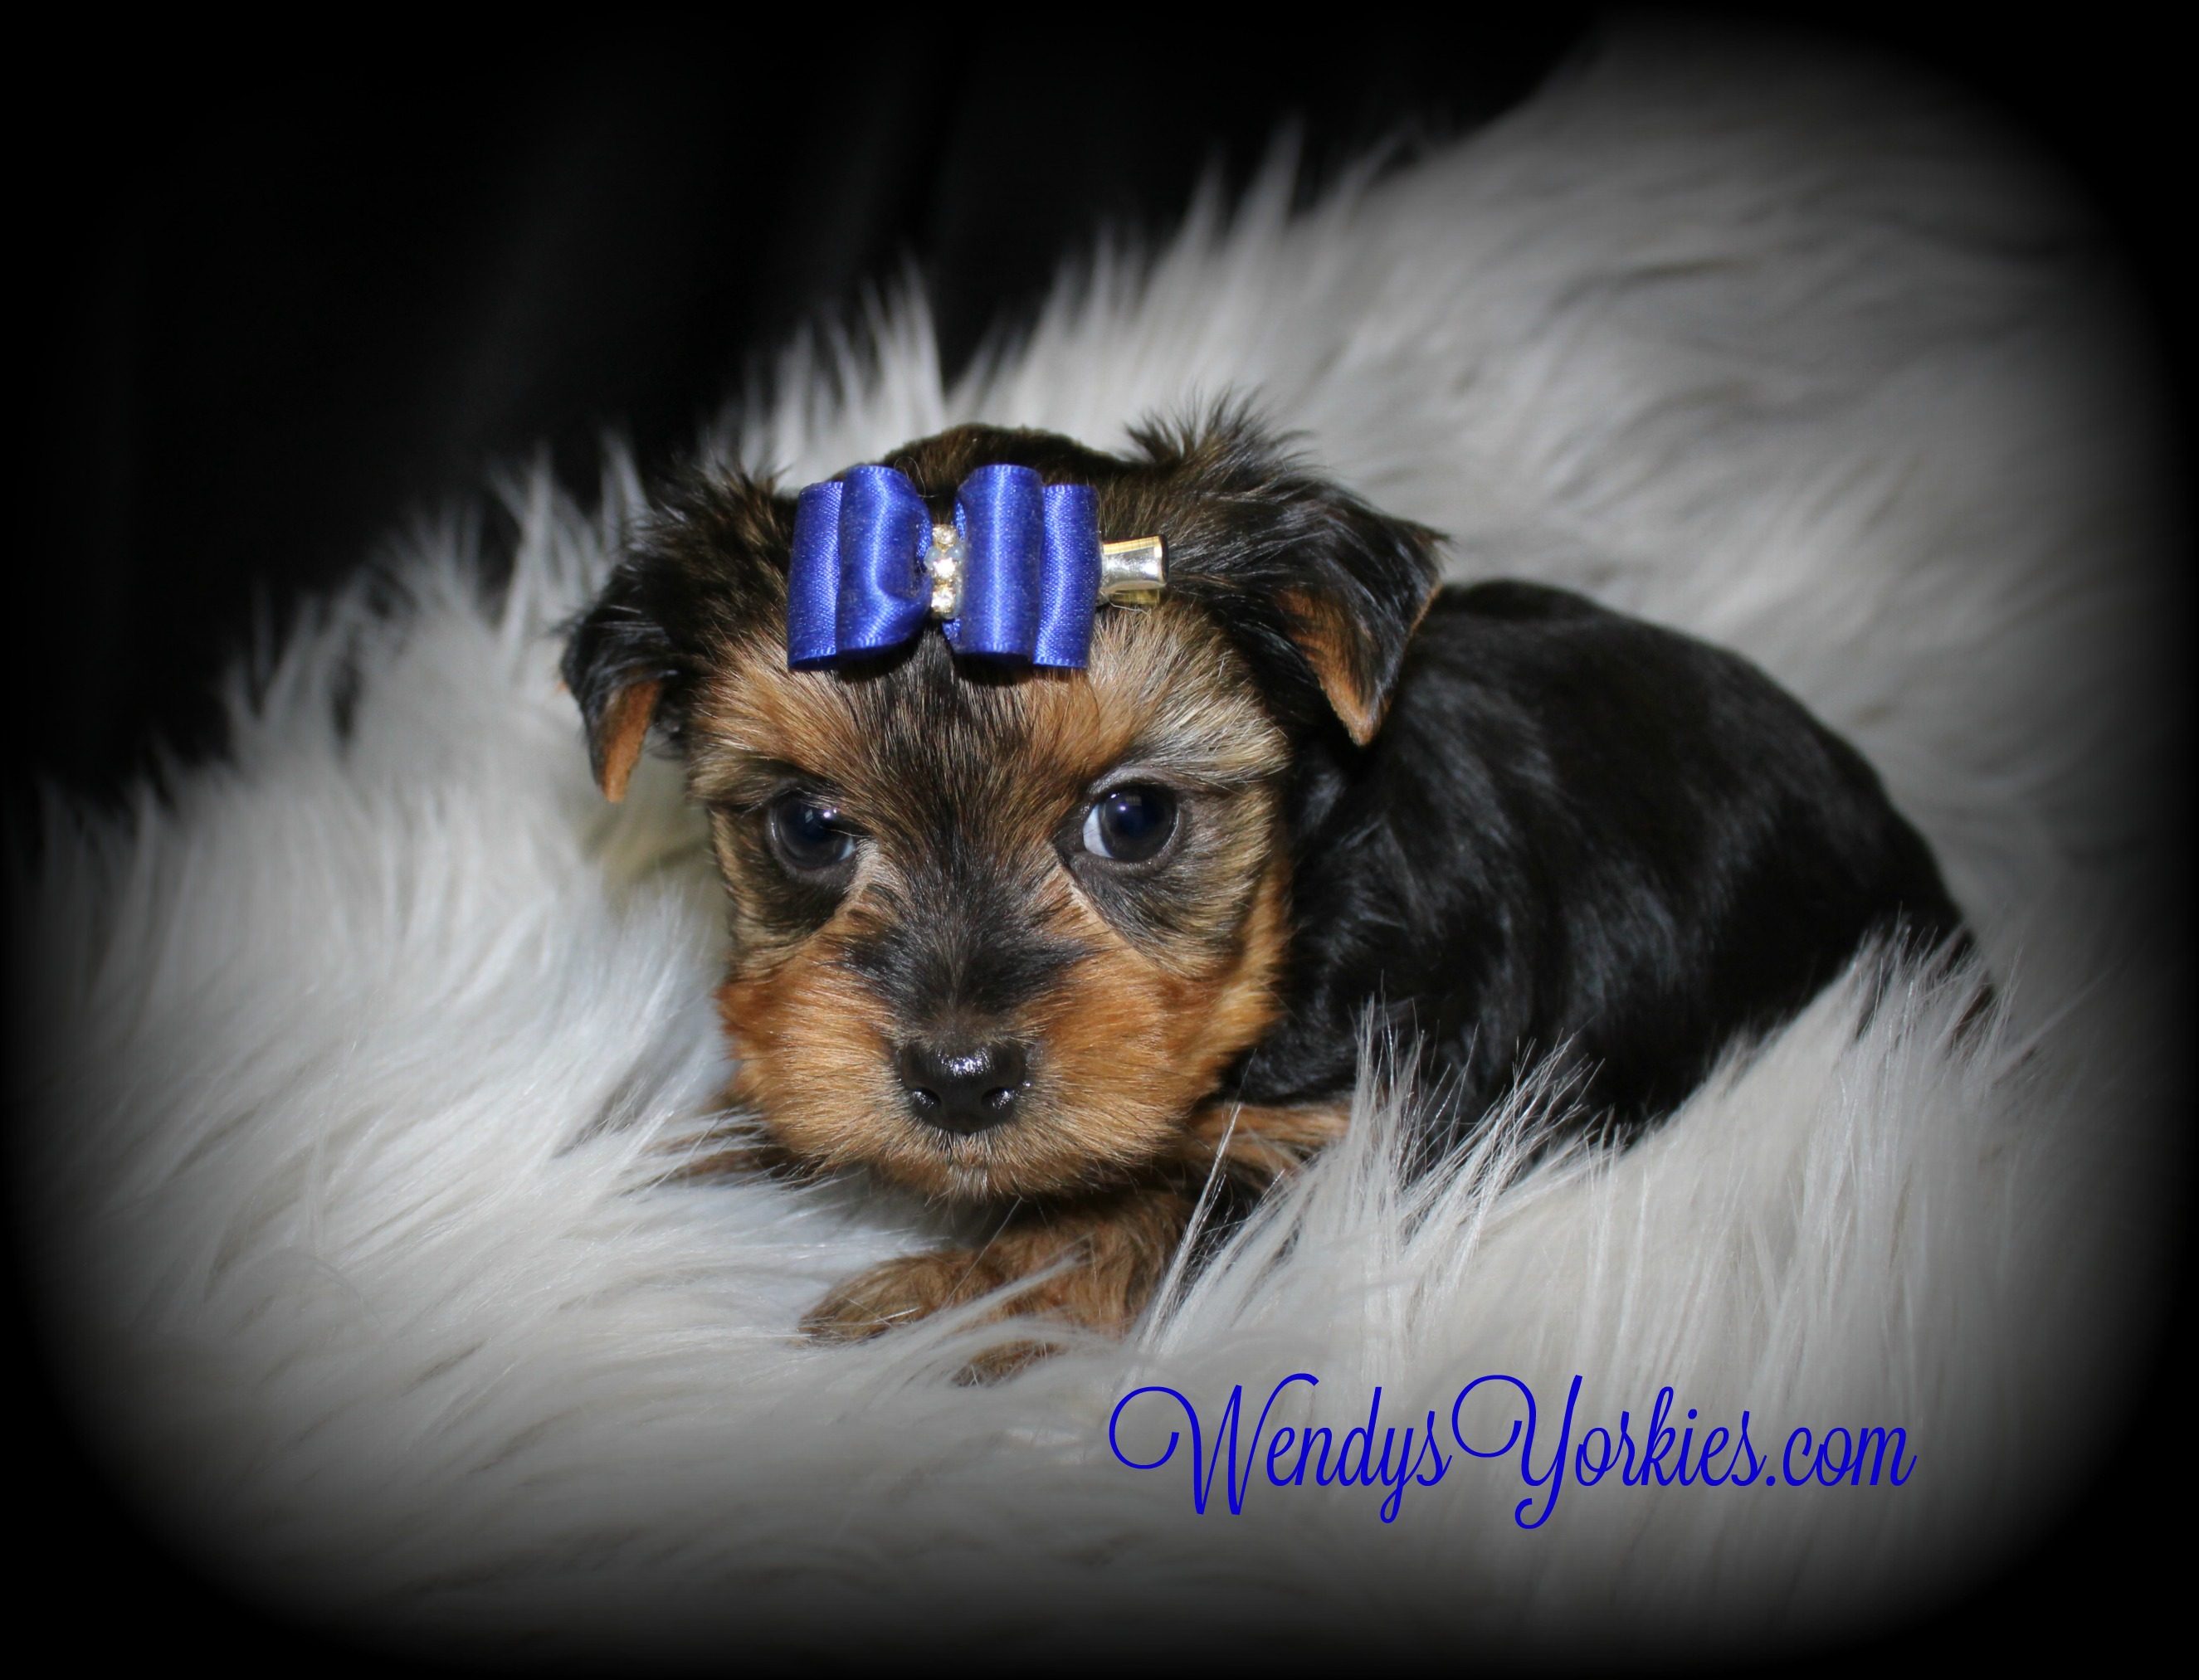 Toy Yorkie puppy for sale, Harley m1, WendysYorkies.com